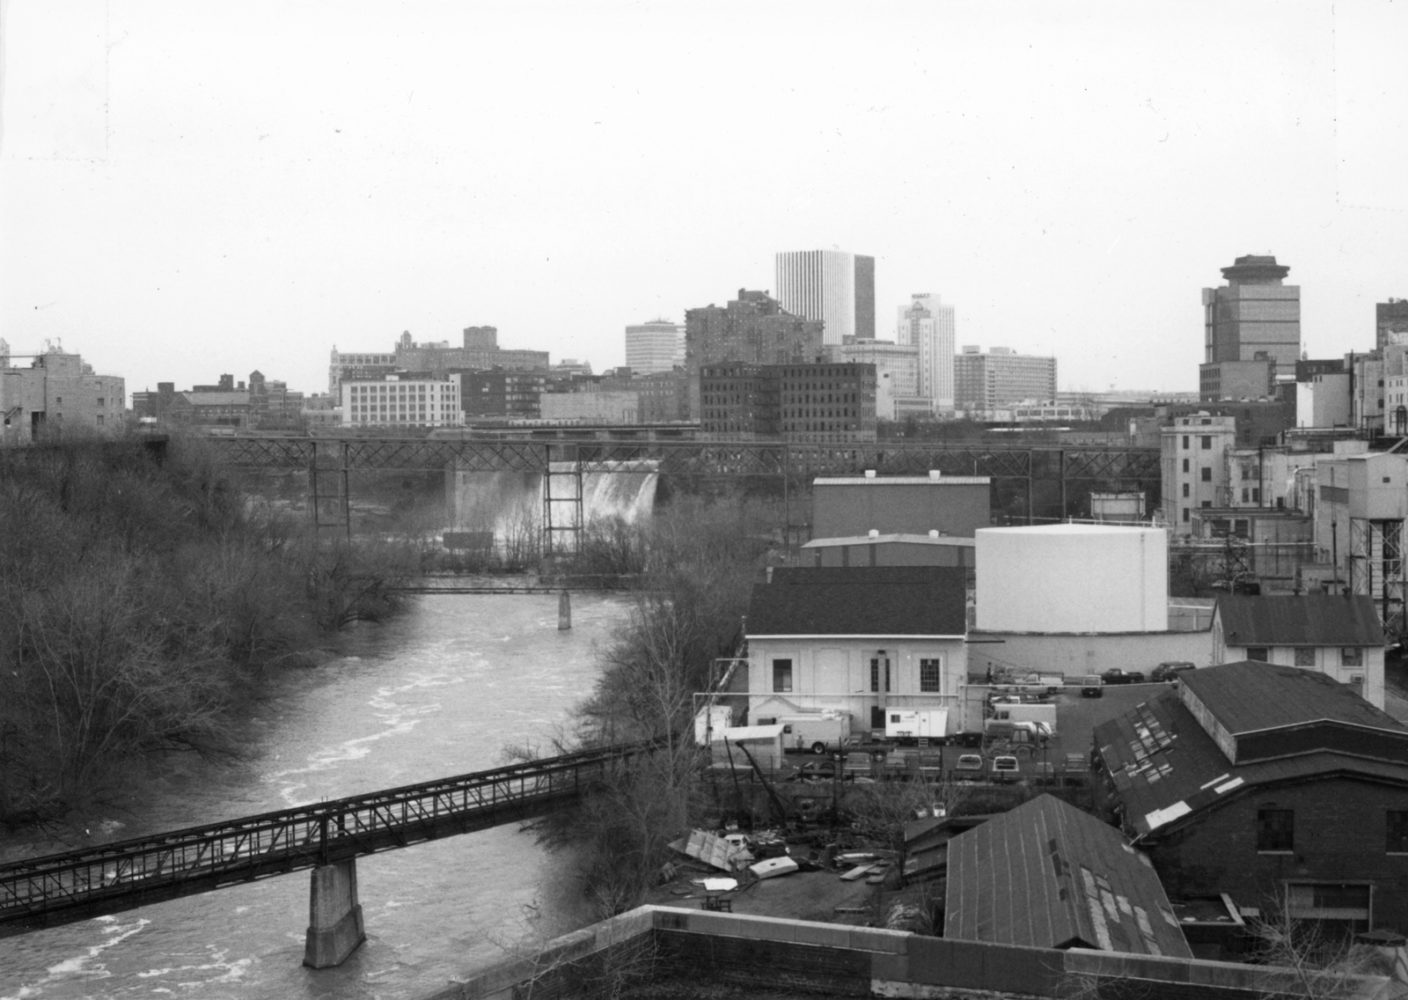 High Falls area - photo by Paul Dodd 1976